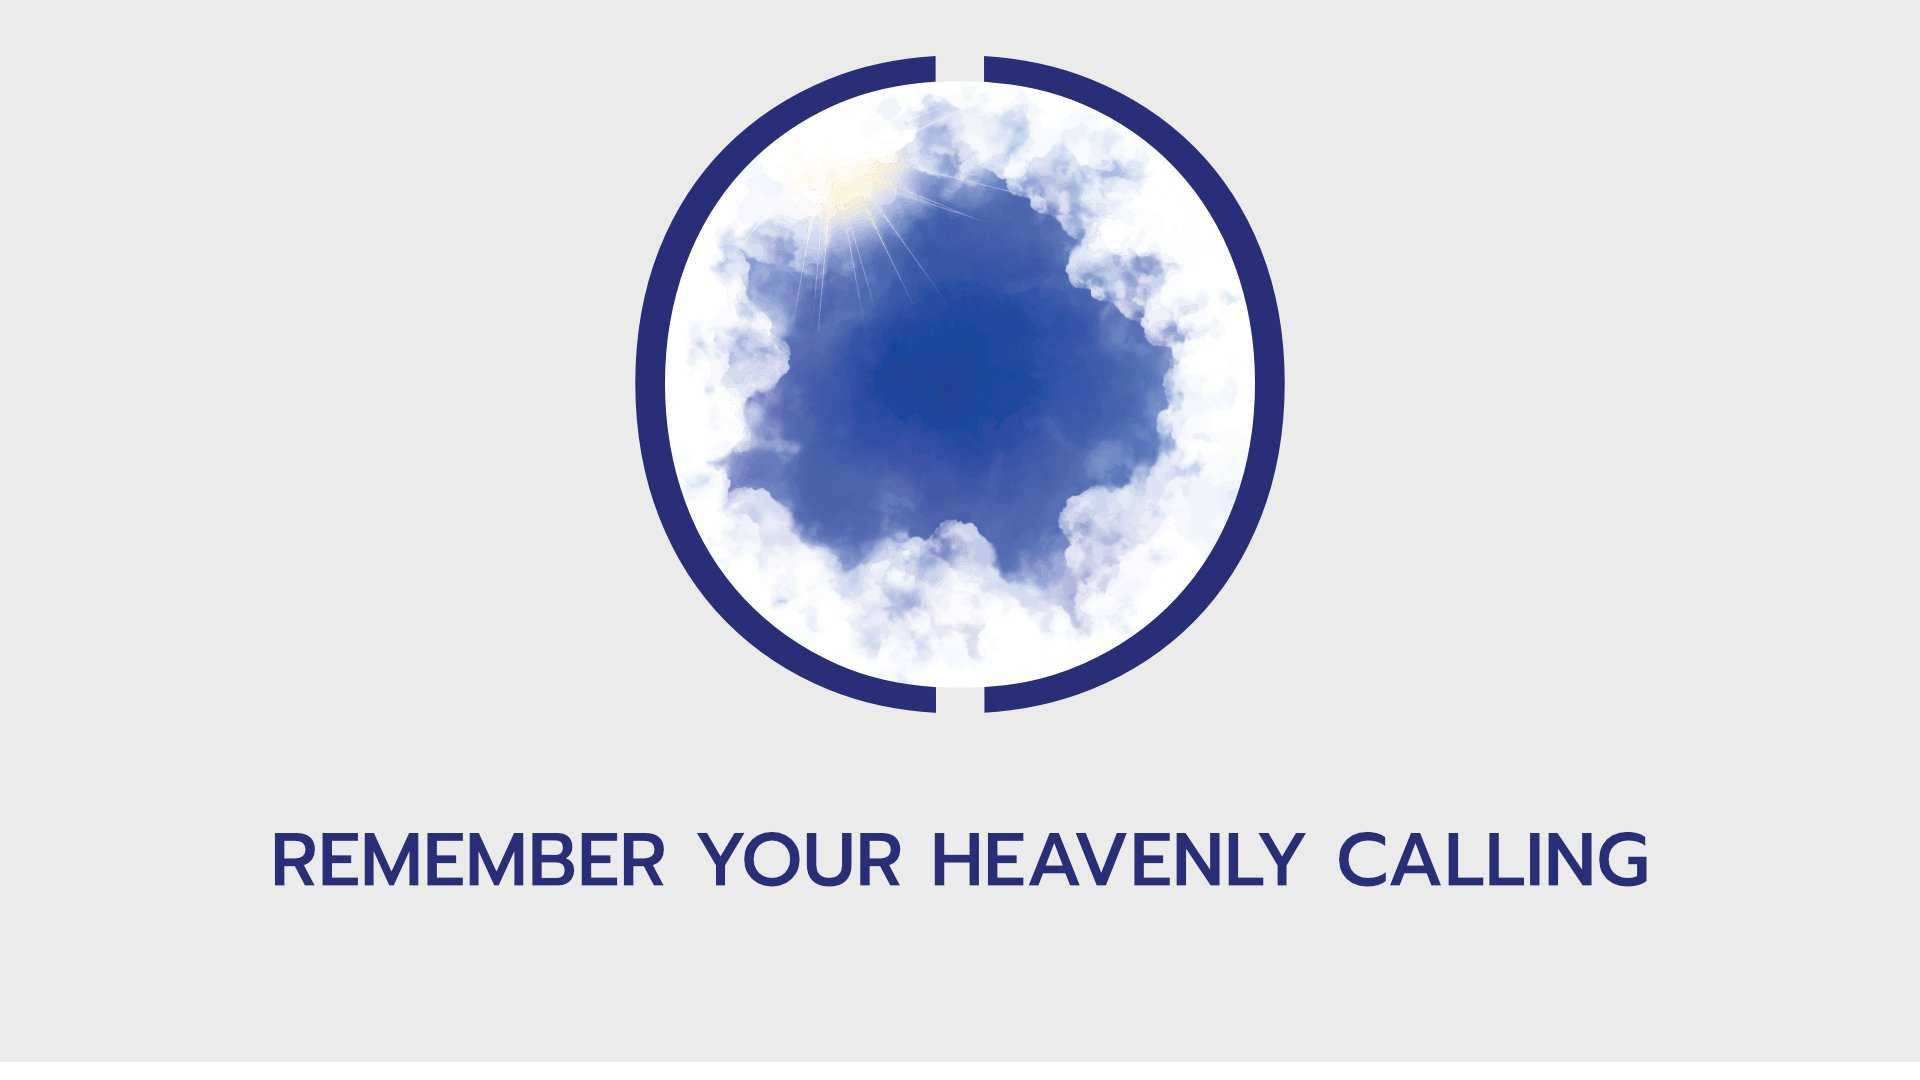 REMEMBER YOUR HEAVENLY CALLING